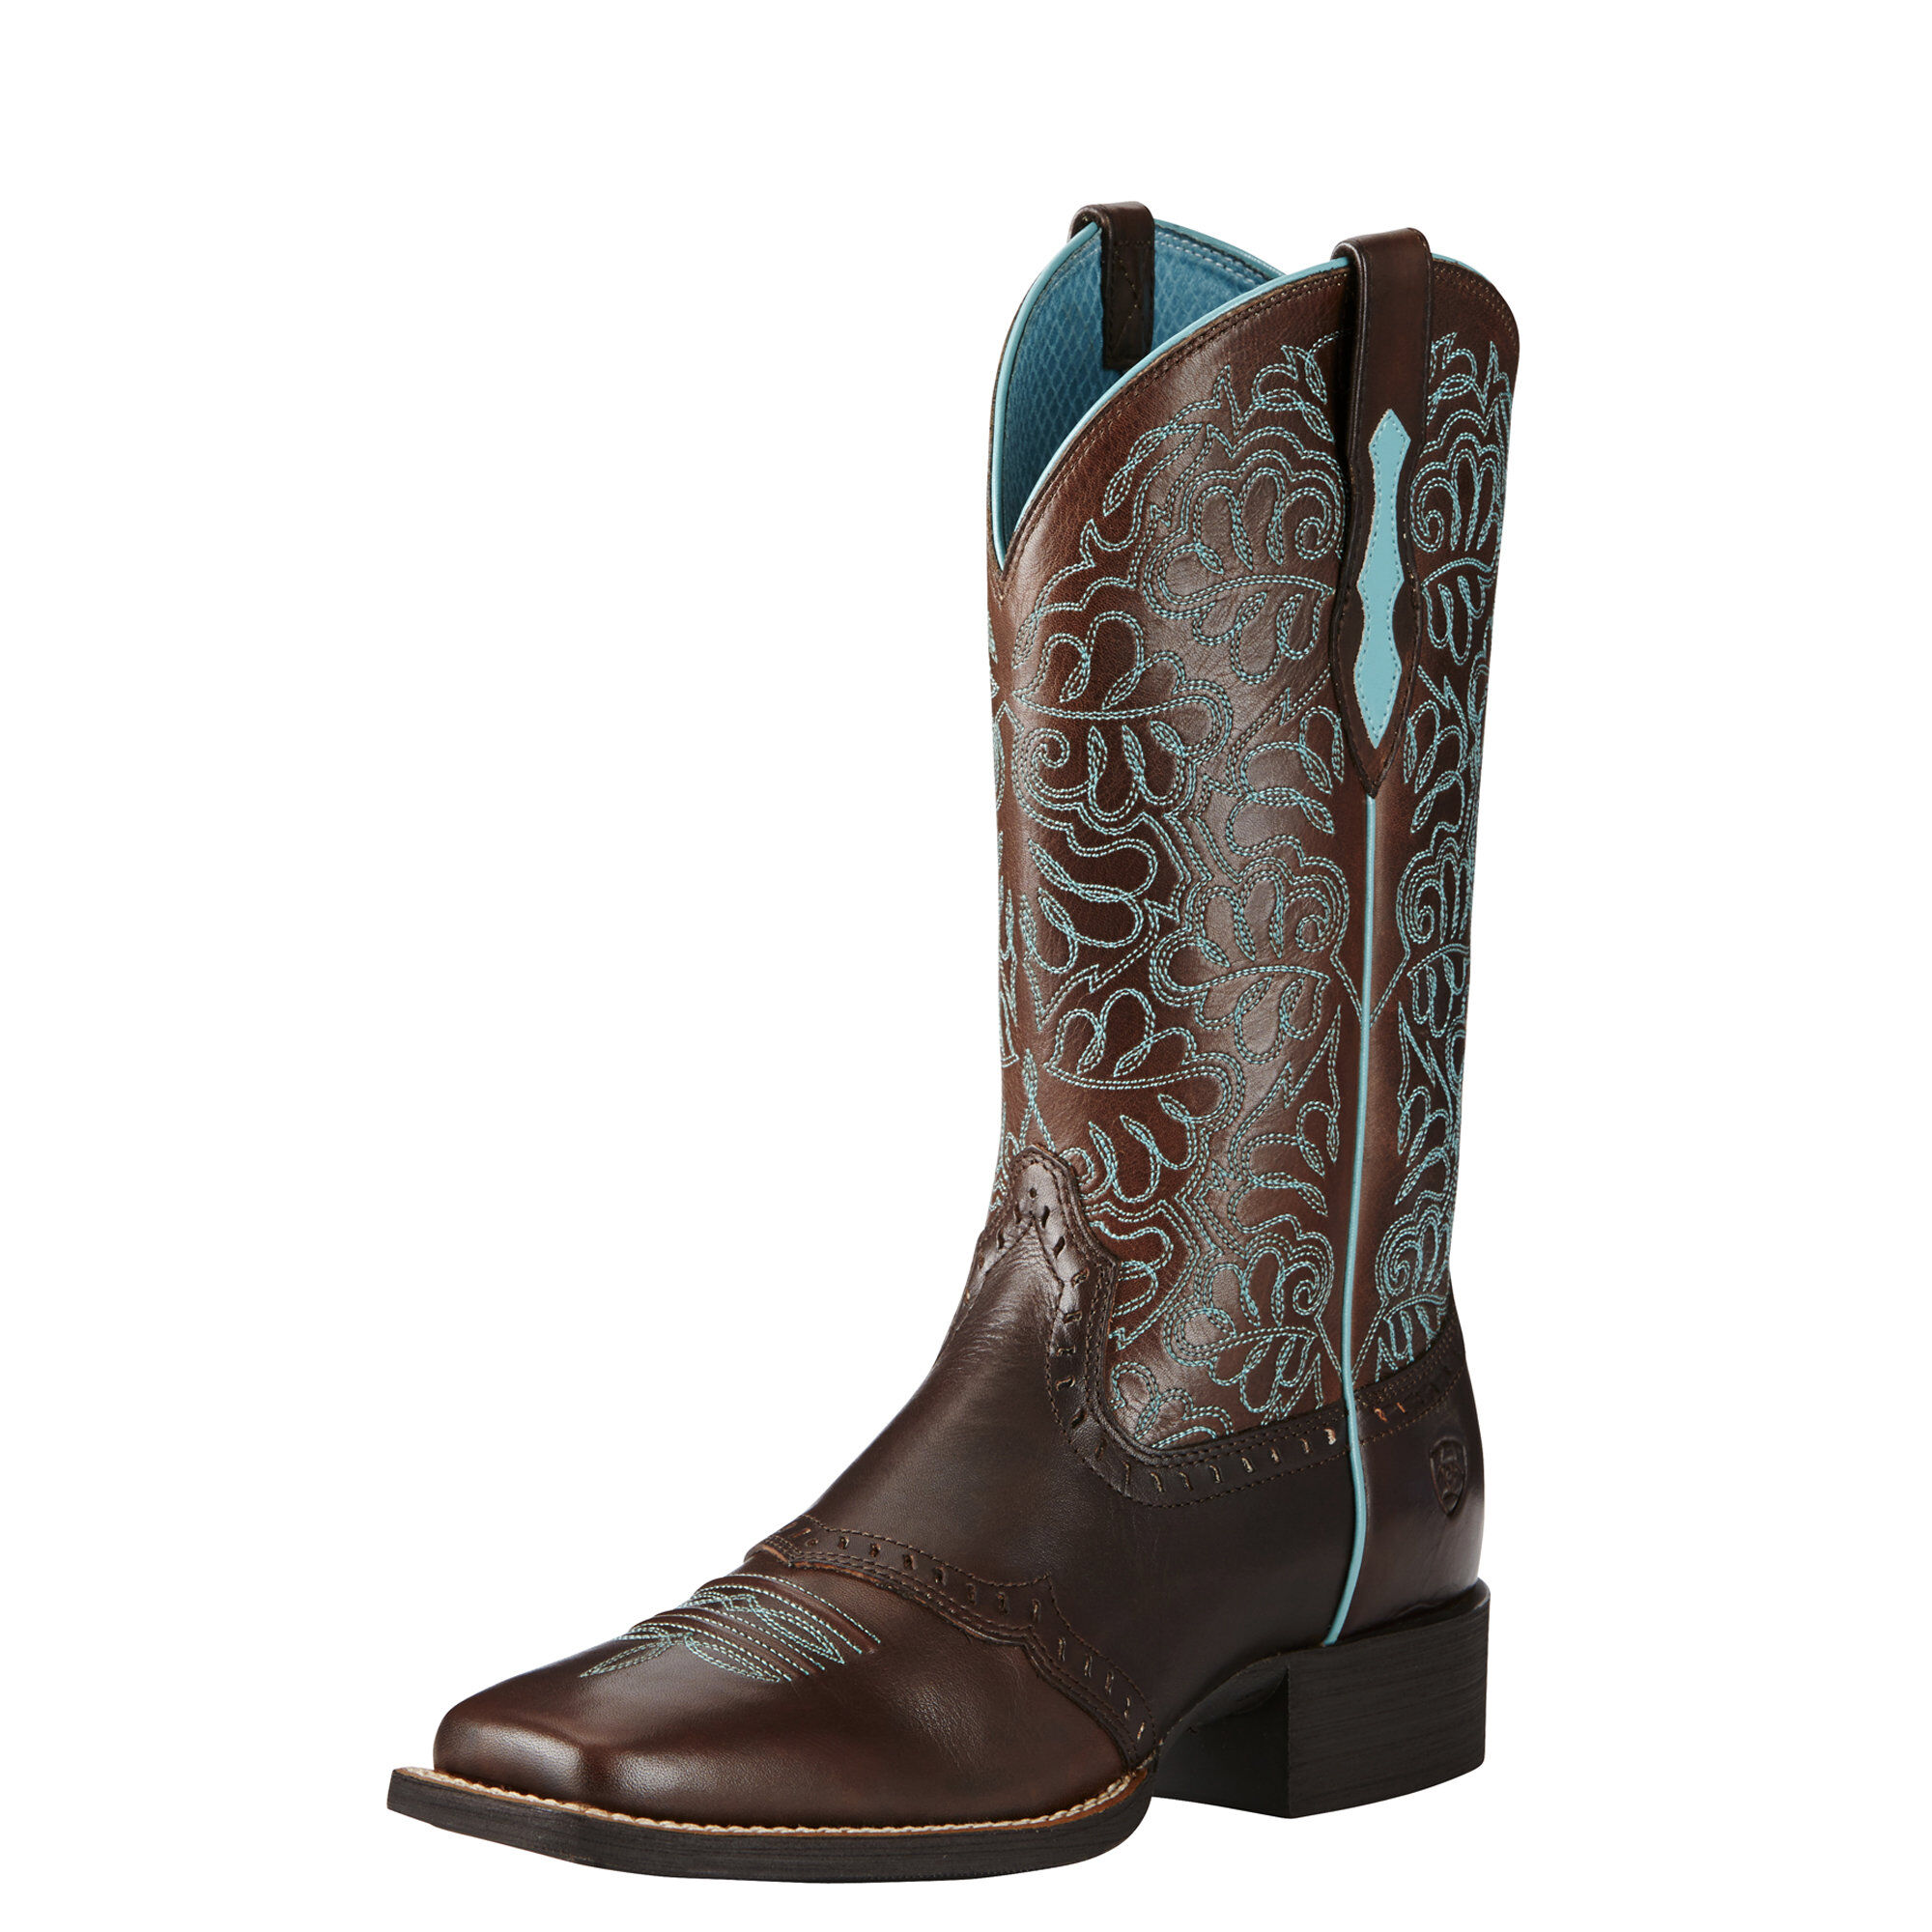 Botte Print, Womens Boots Be Only